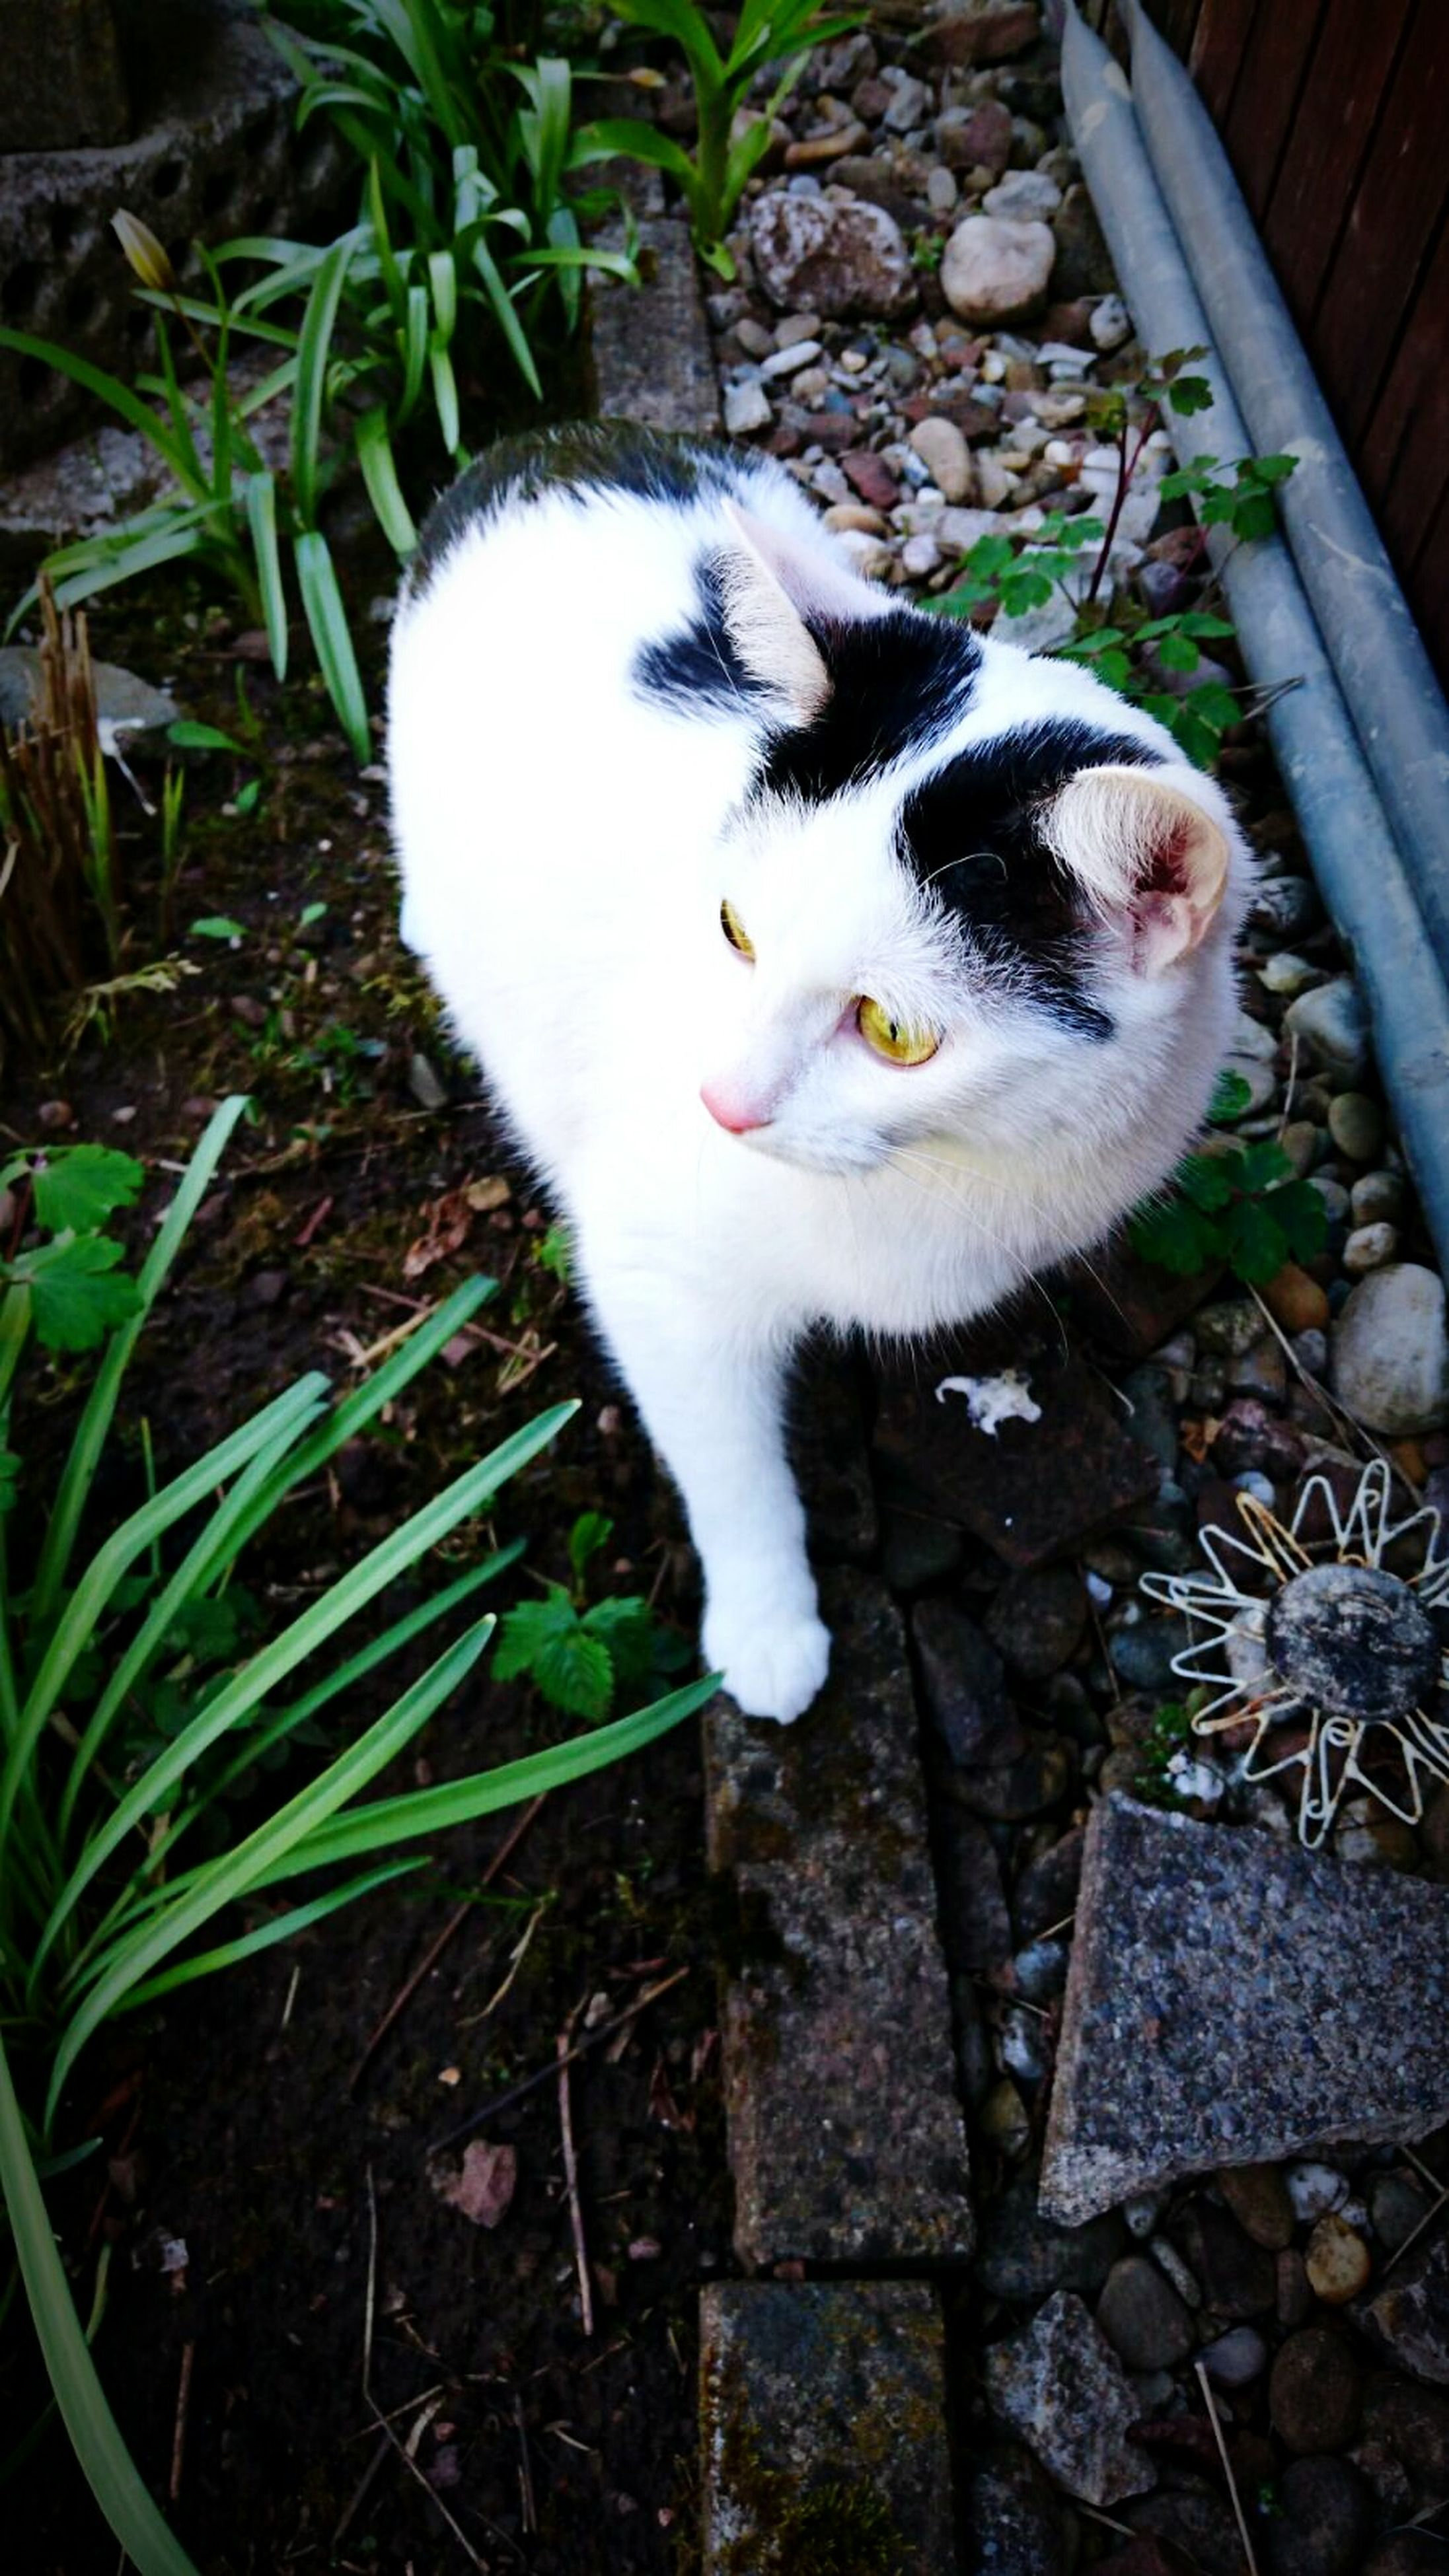 animal themes, domestic cat, one animal, cat, domestic animals, pets, high angle view, feline, mammal, white color, whisker, relaxation, zoology, no people, day, full length, cute, lying down, outdoors, young animal